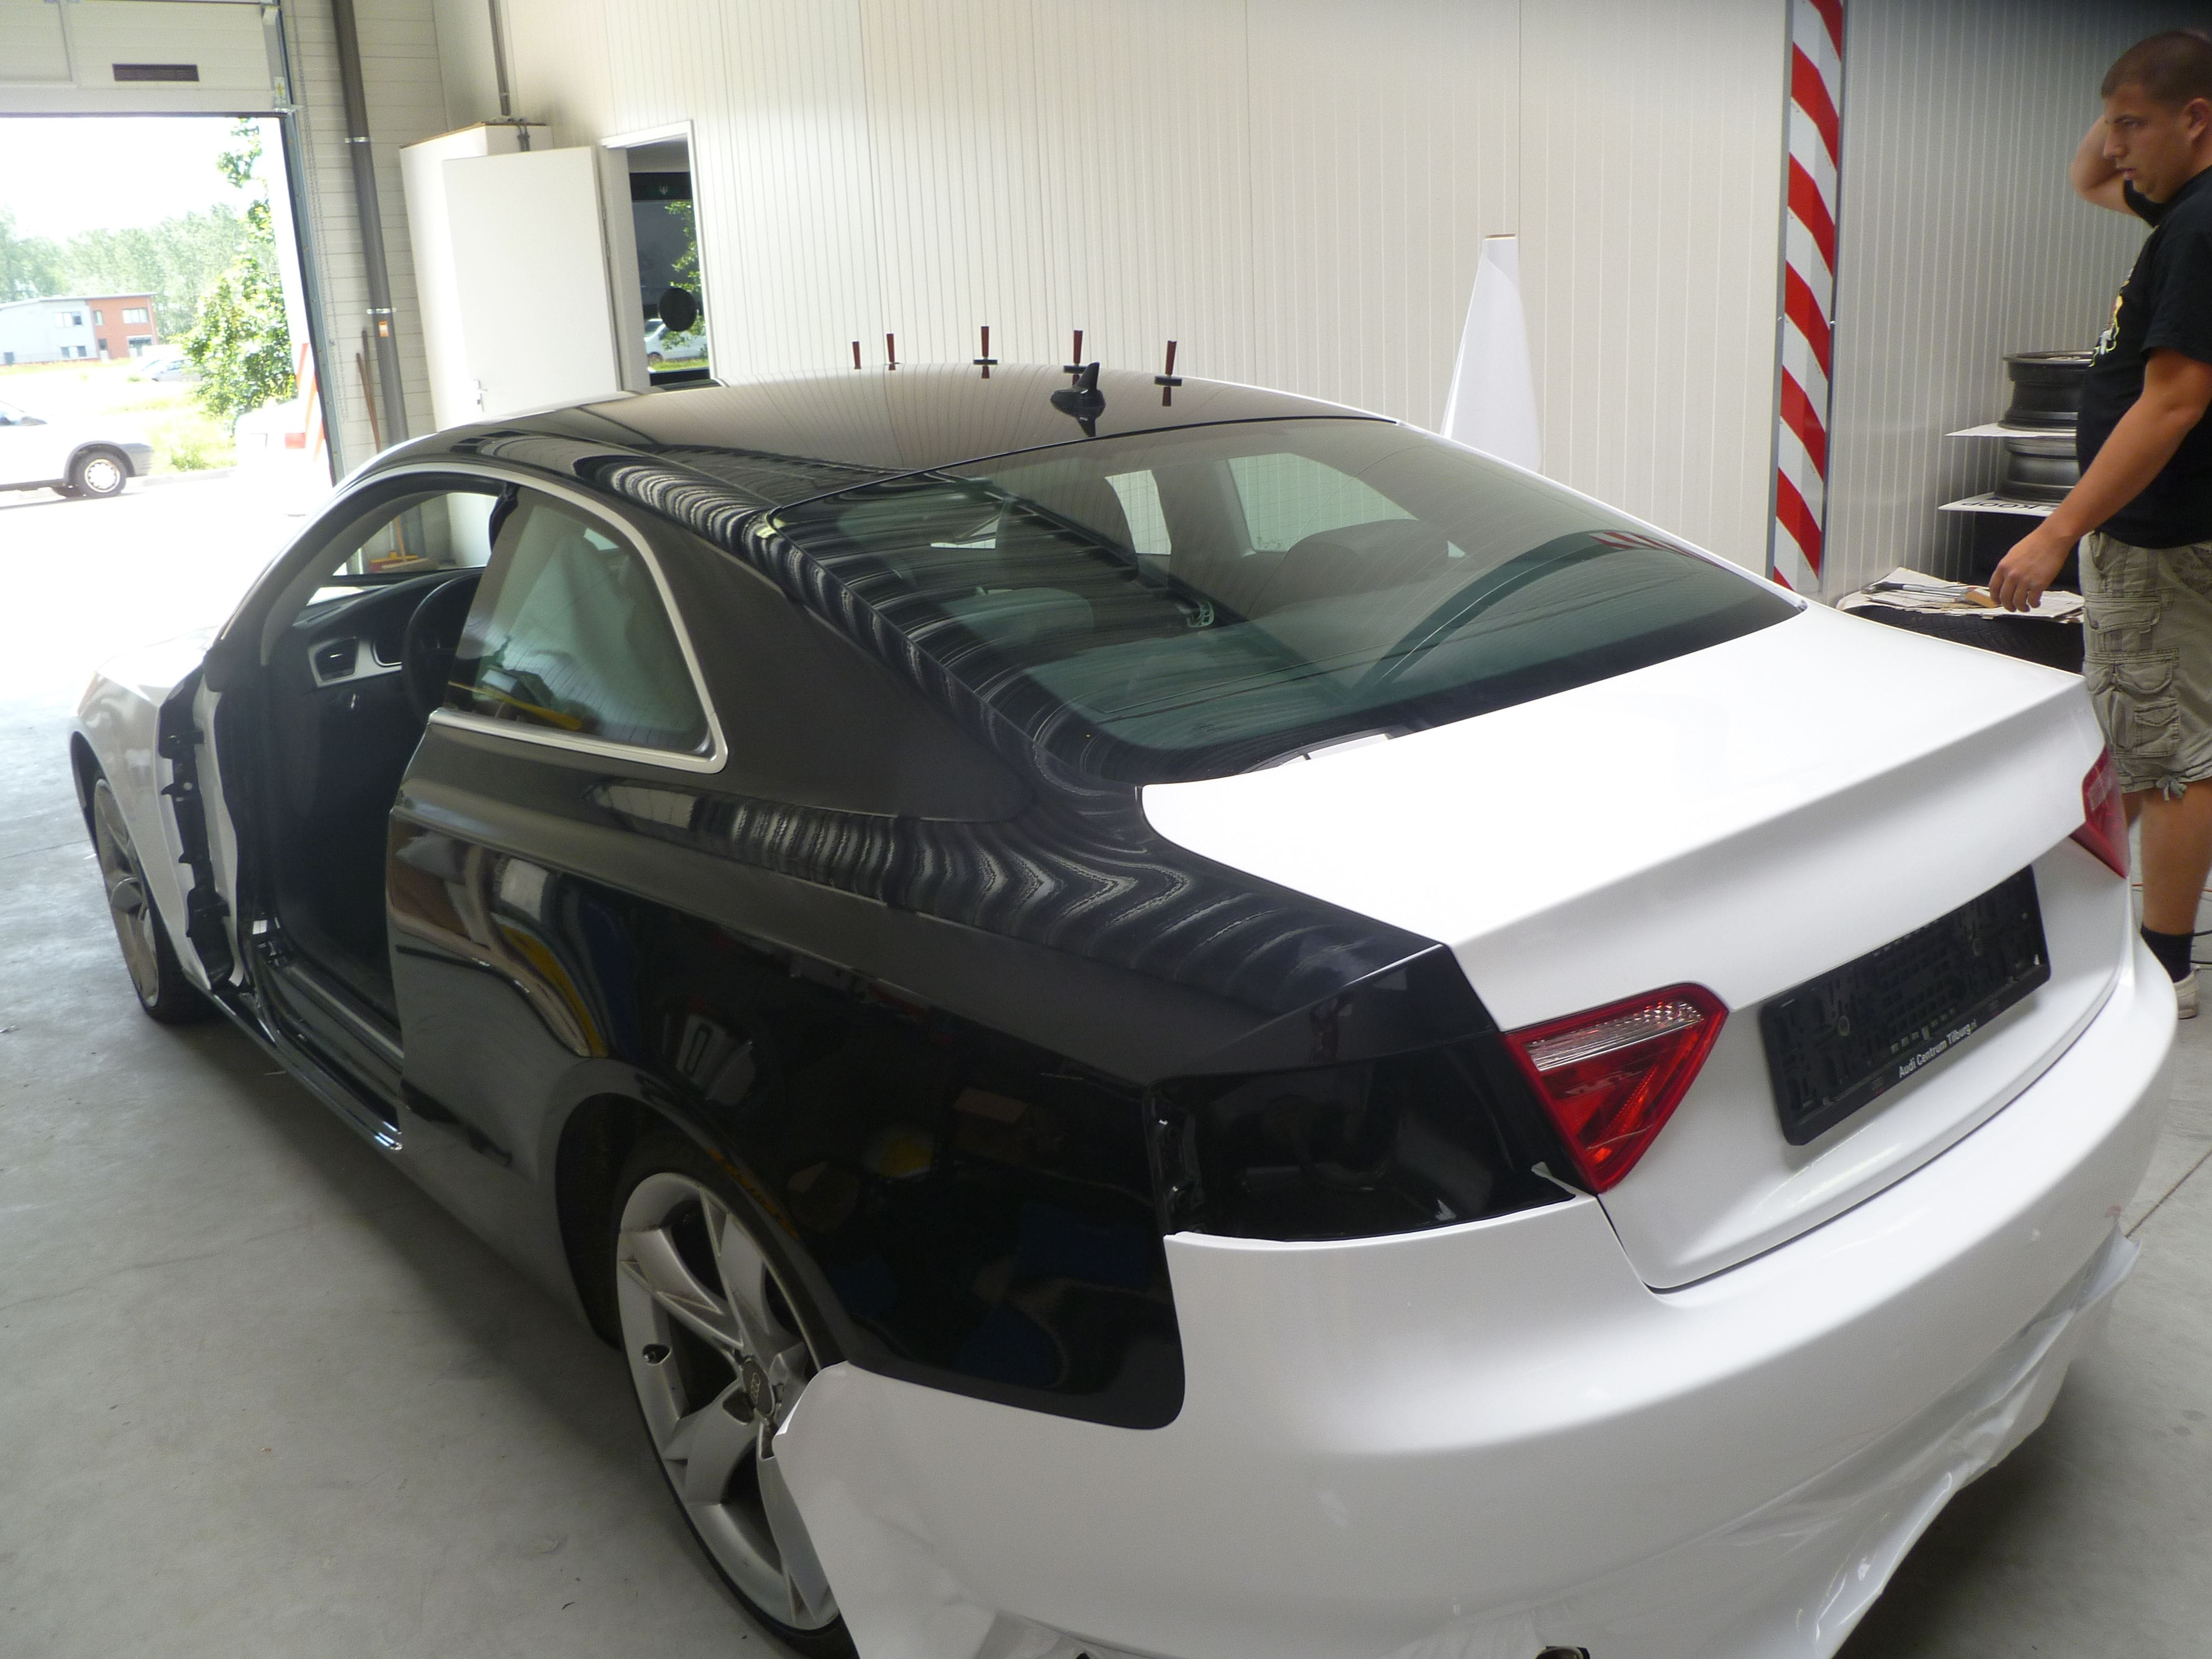 Audi A5 coupe met Metallic Witte Wrap, Carwrapping door Wrapmyride.nu Foto-nr:4723, ©2020